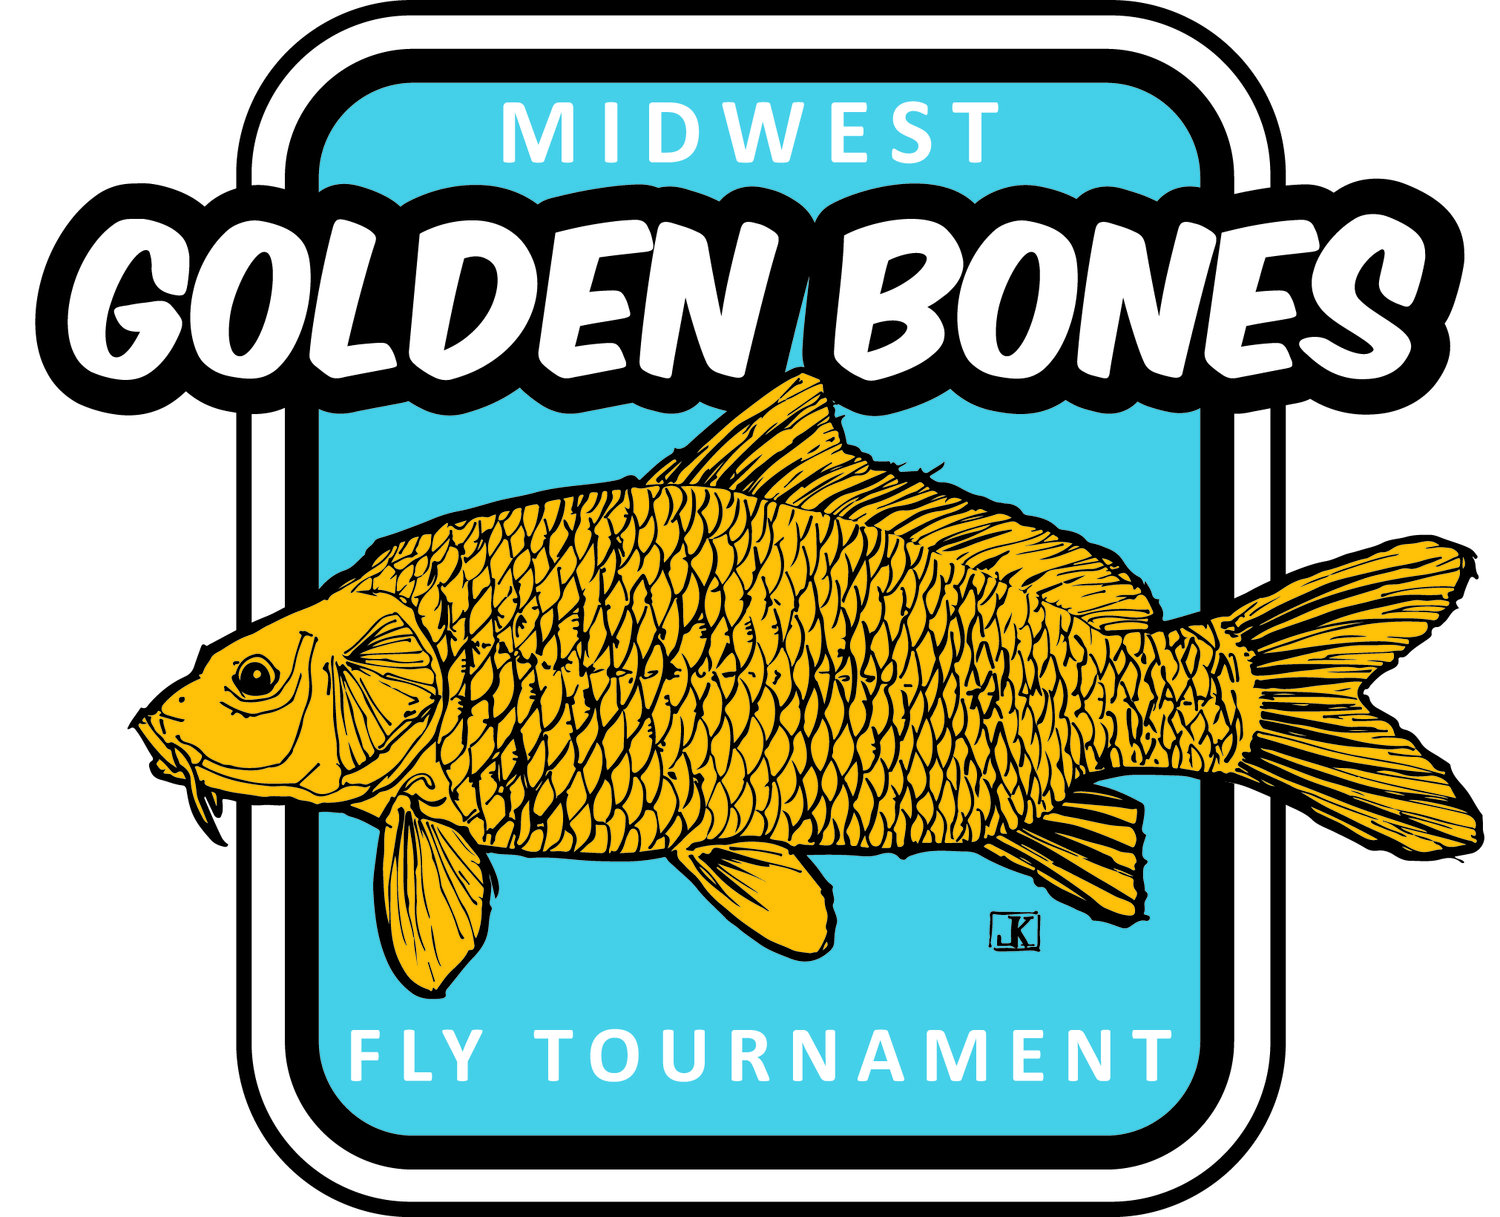 Midwest Golden Bones Fly Tournament